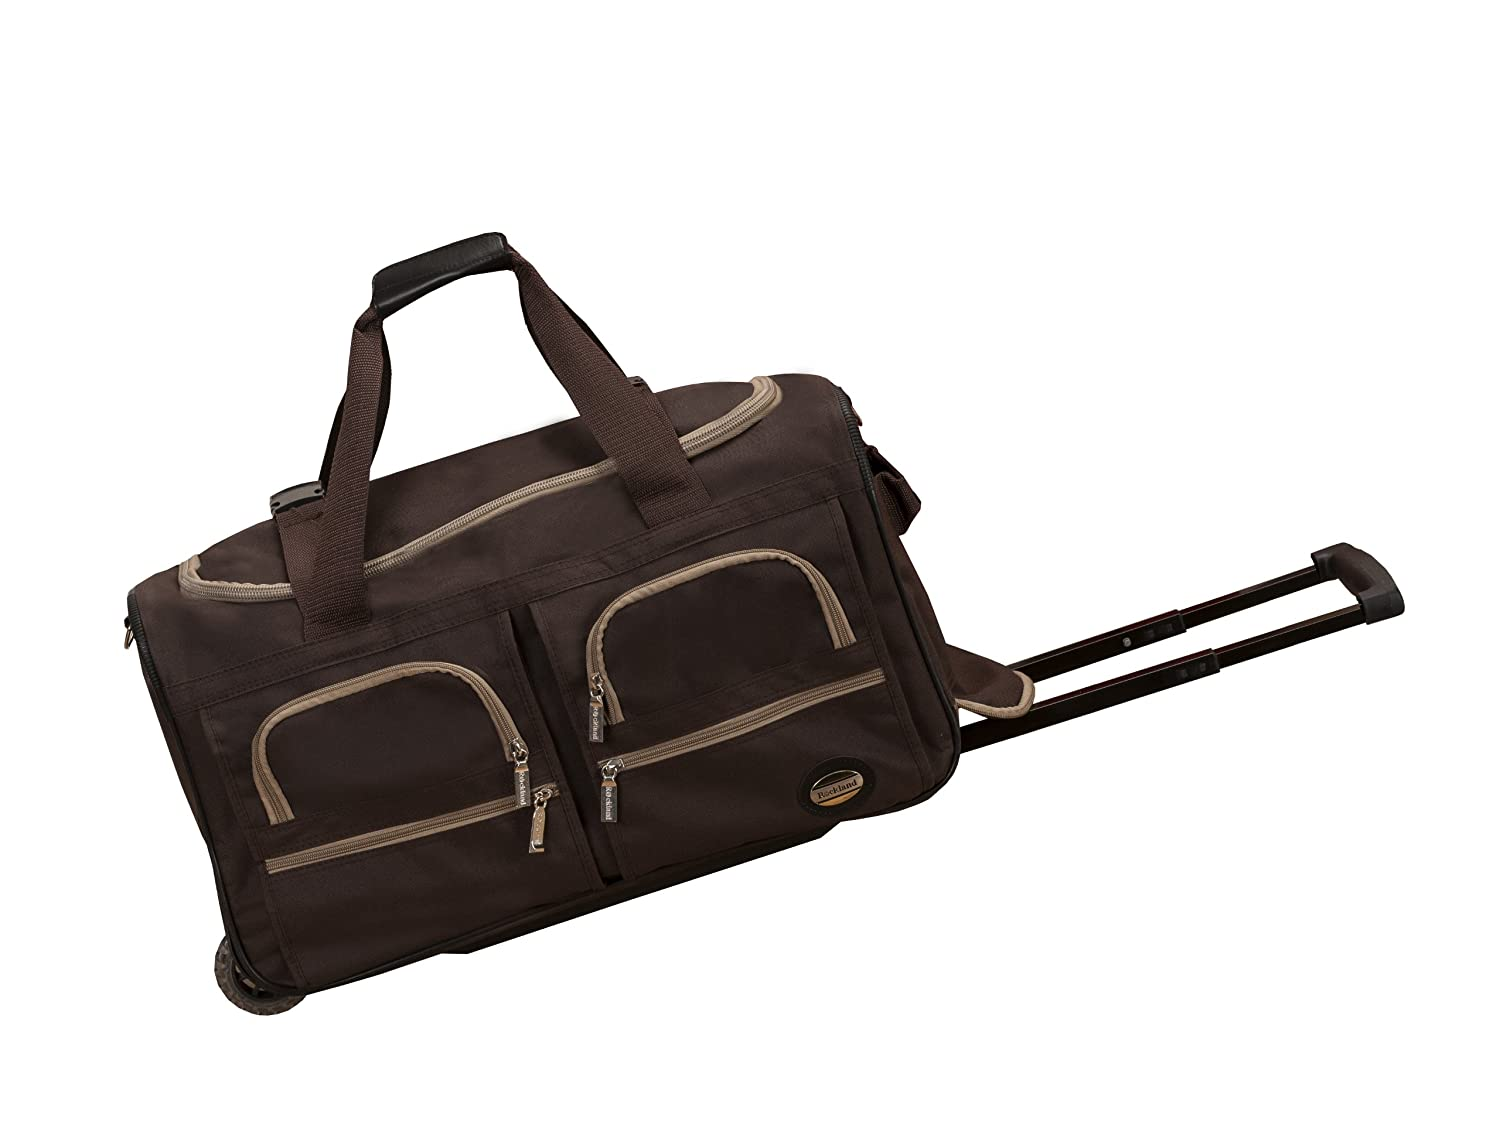 Rockland Luggage 22 Inch Rolling Duffle Bag, Charcoal, One Size Fox Luggage PRD322